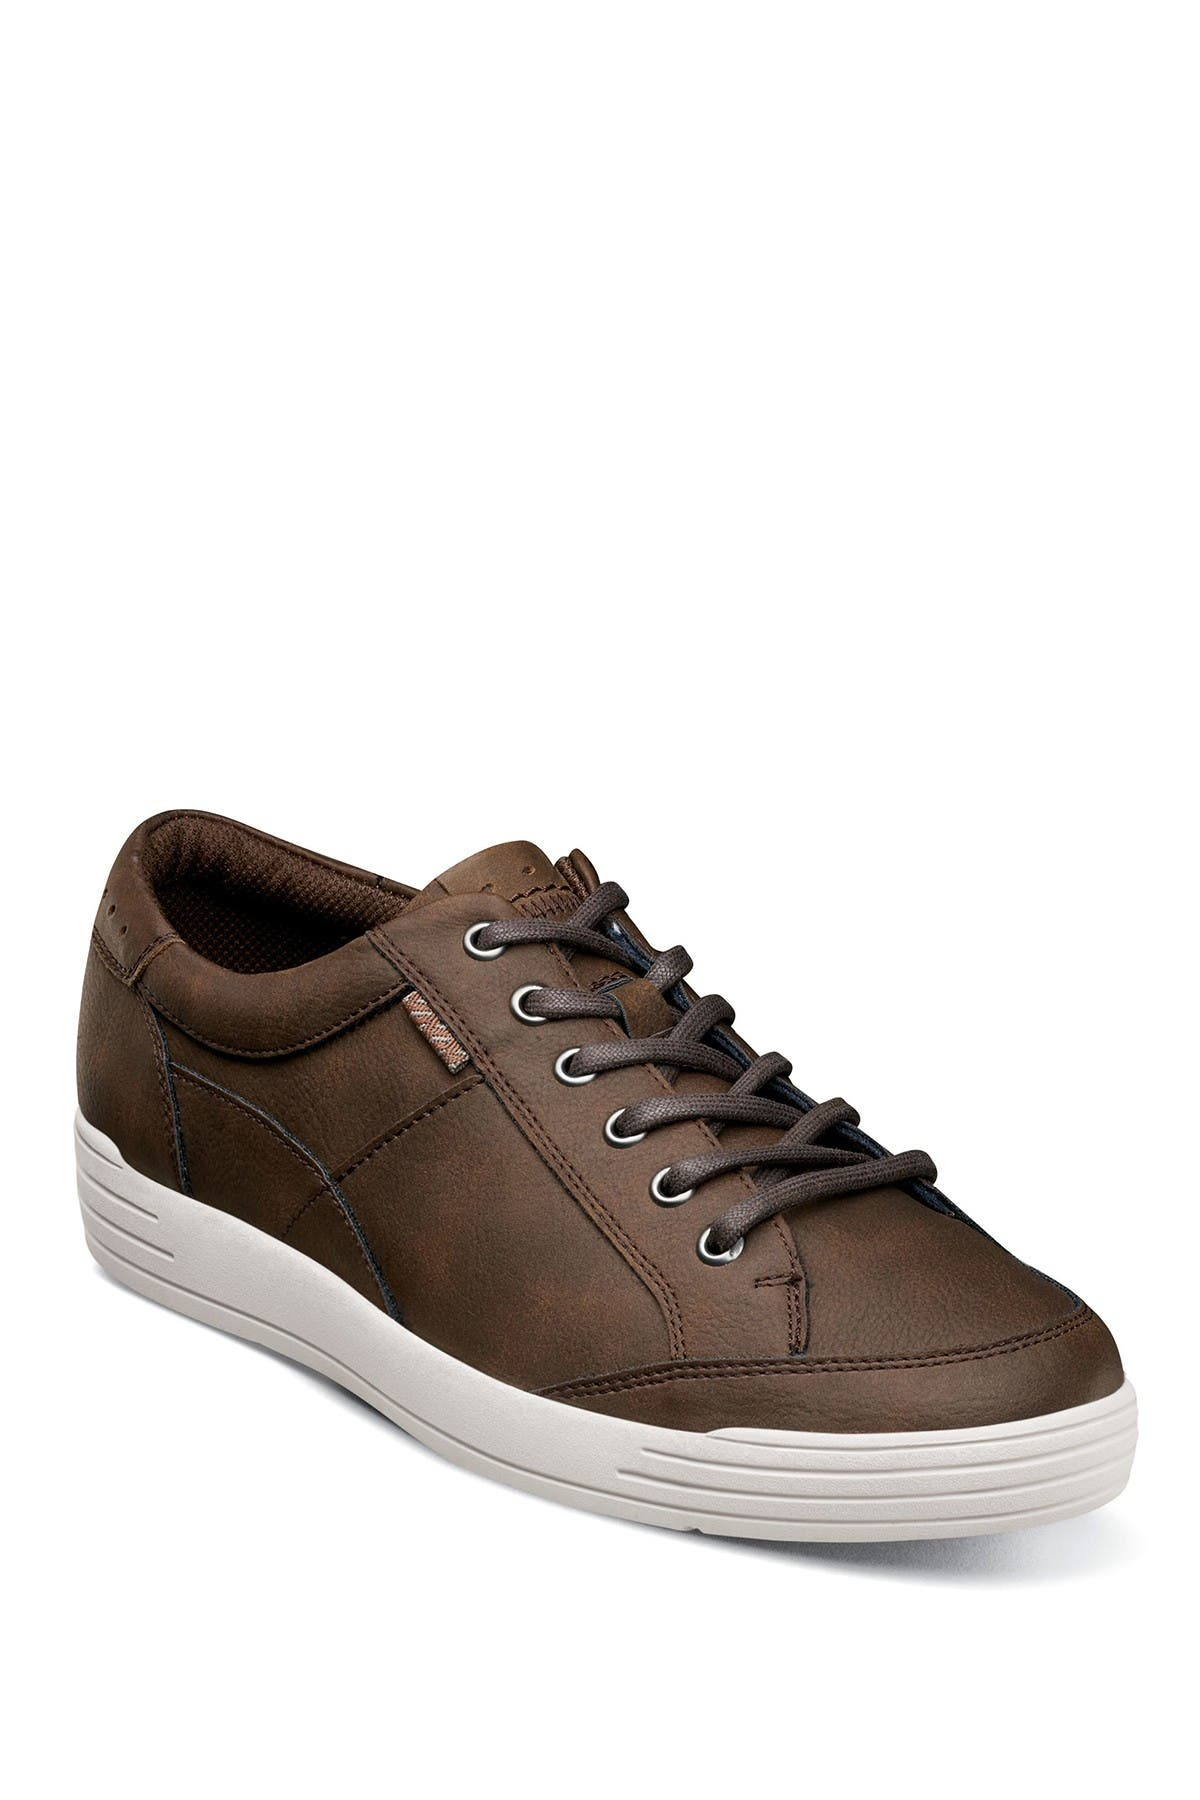 Image of NUNN BUSH Kore City Walk Lace-Up Sneaker - Wide Width Available